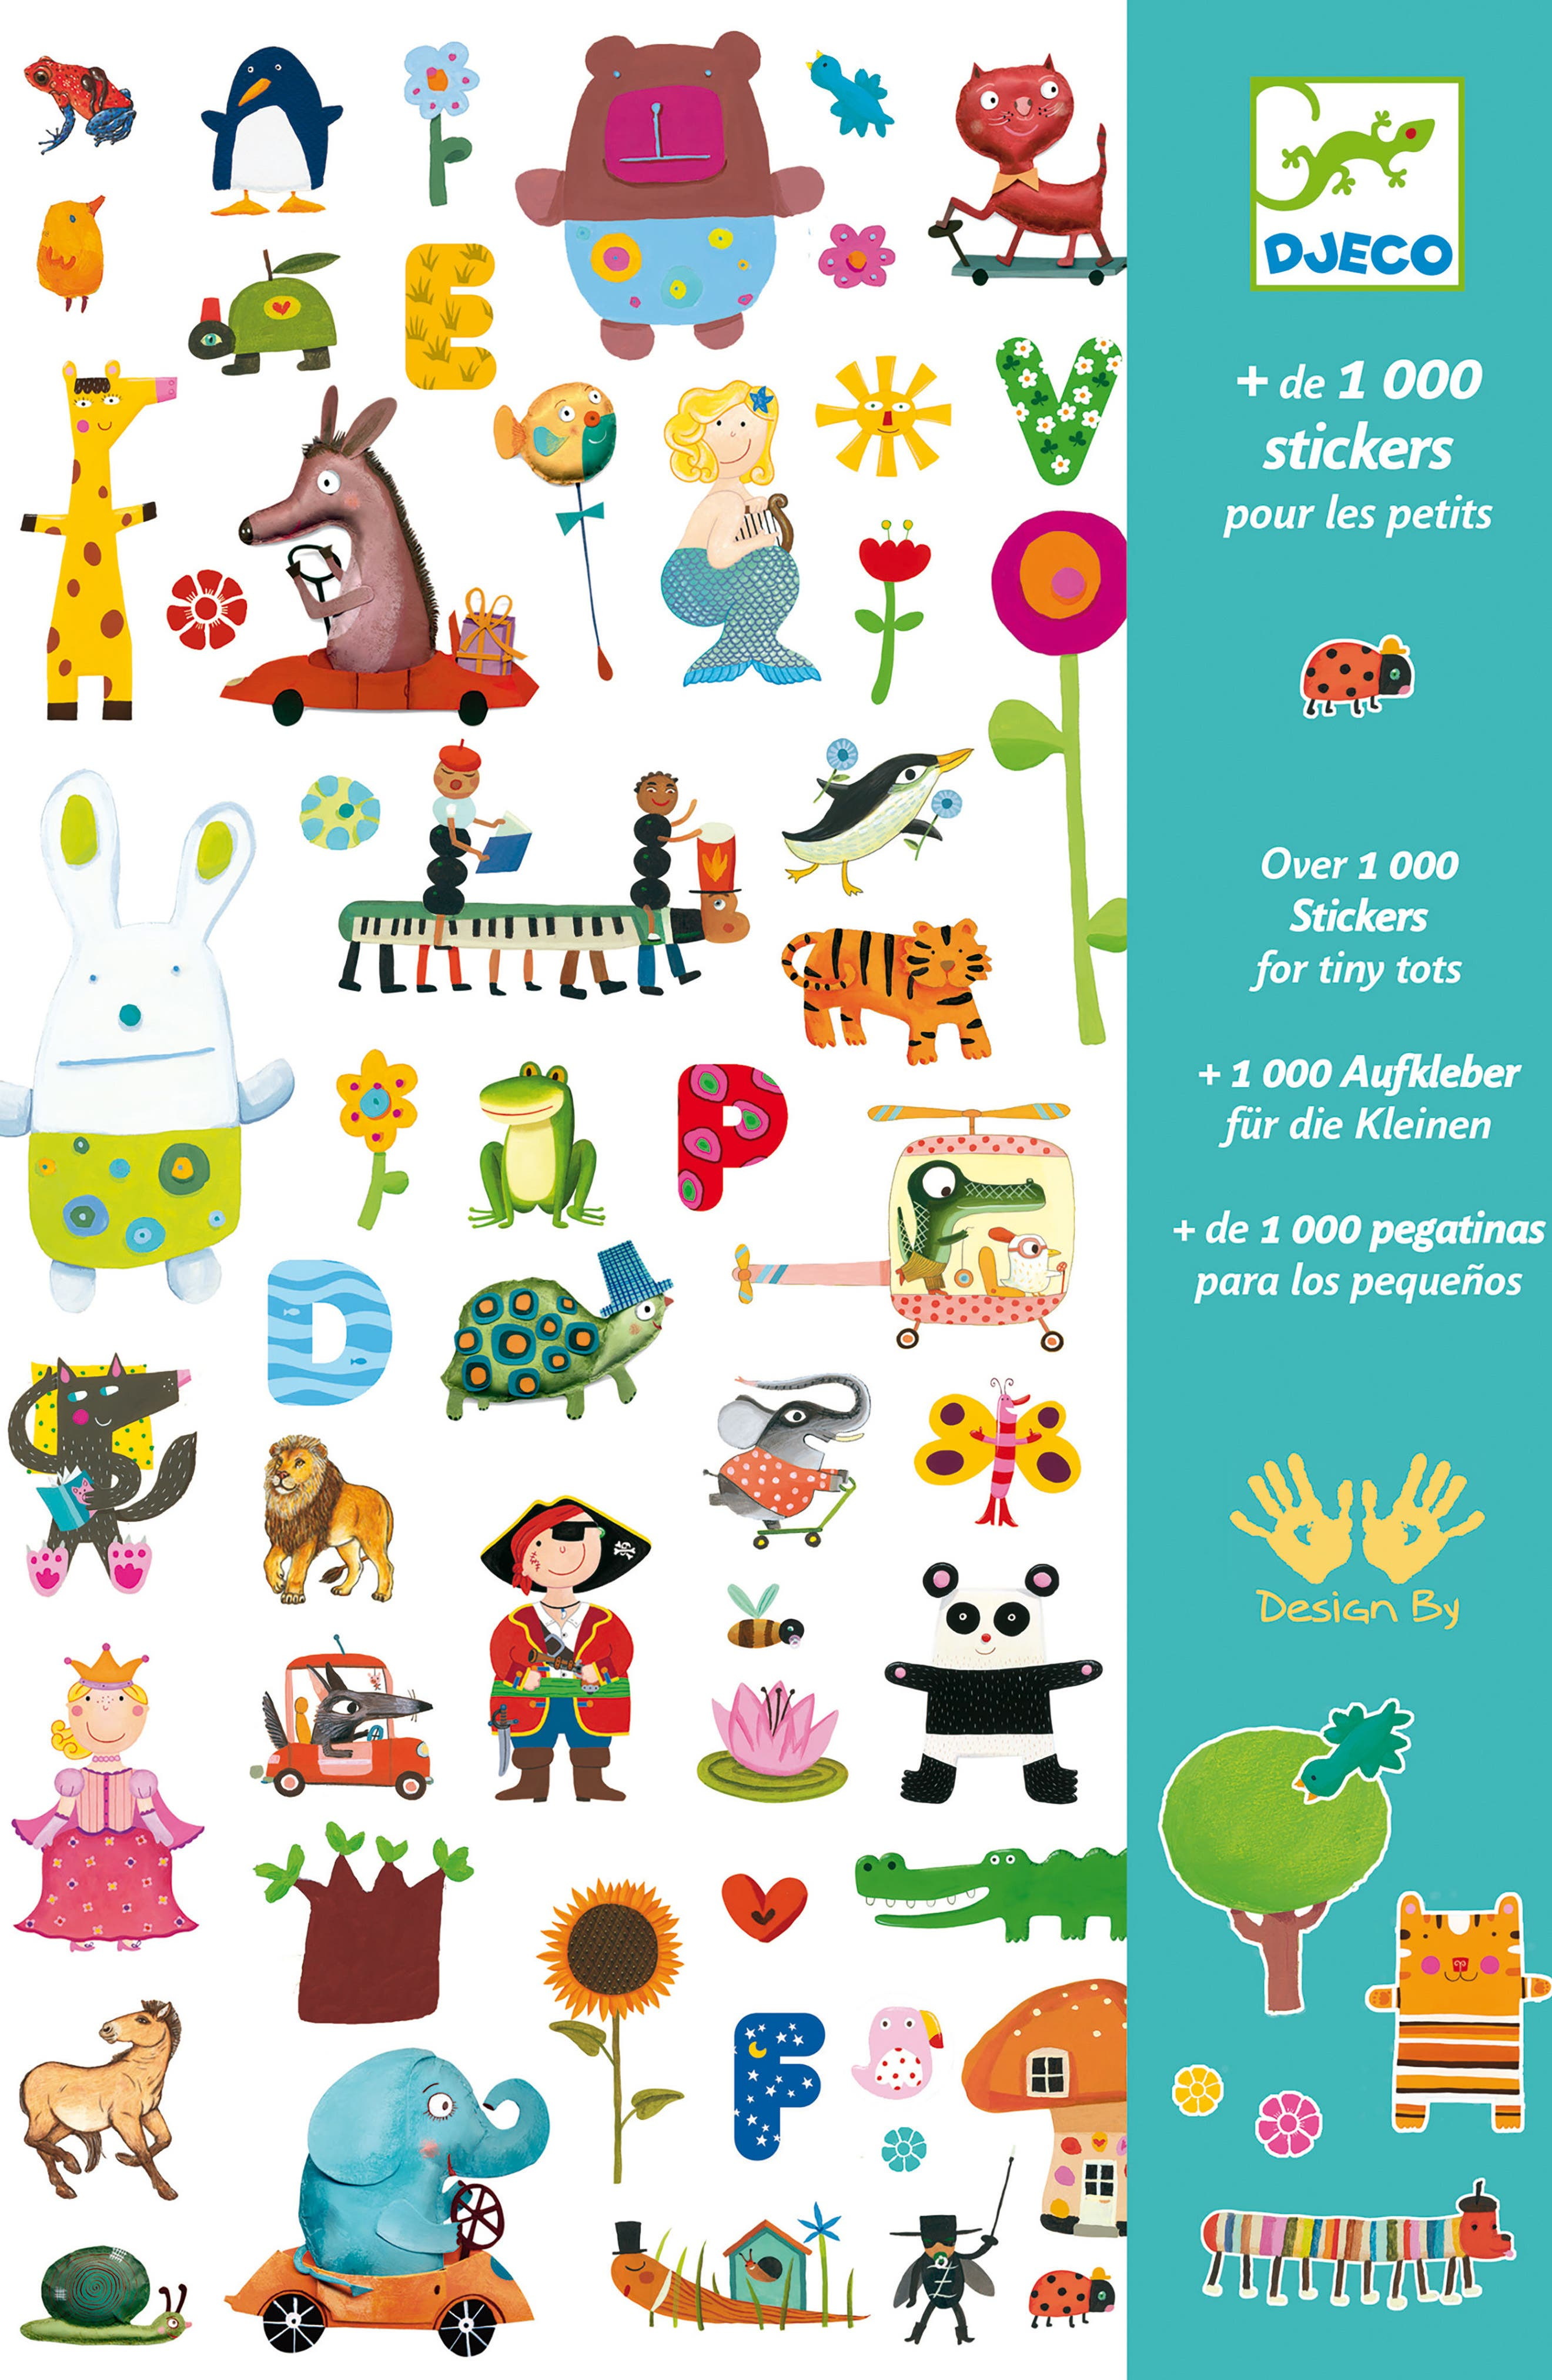 Djeco Over 1,000 Stickers for Tiny Tots Sticker Collection